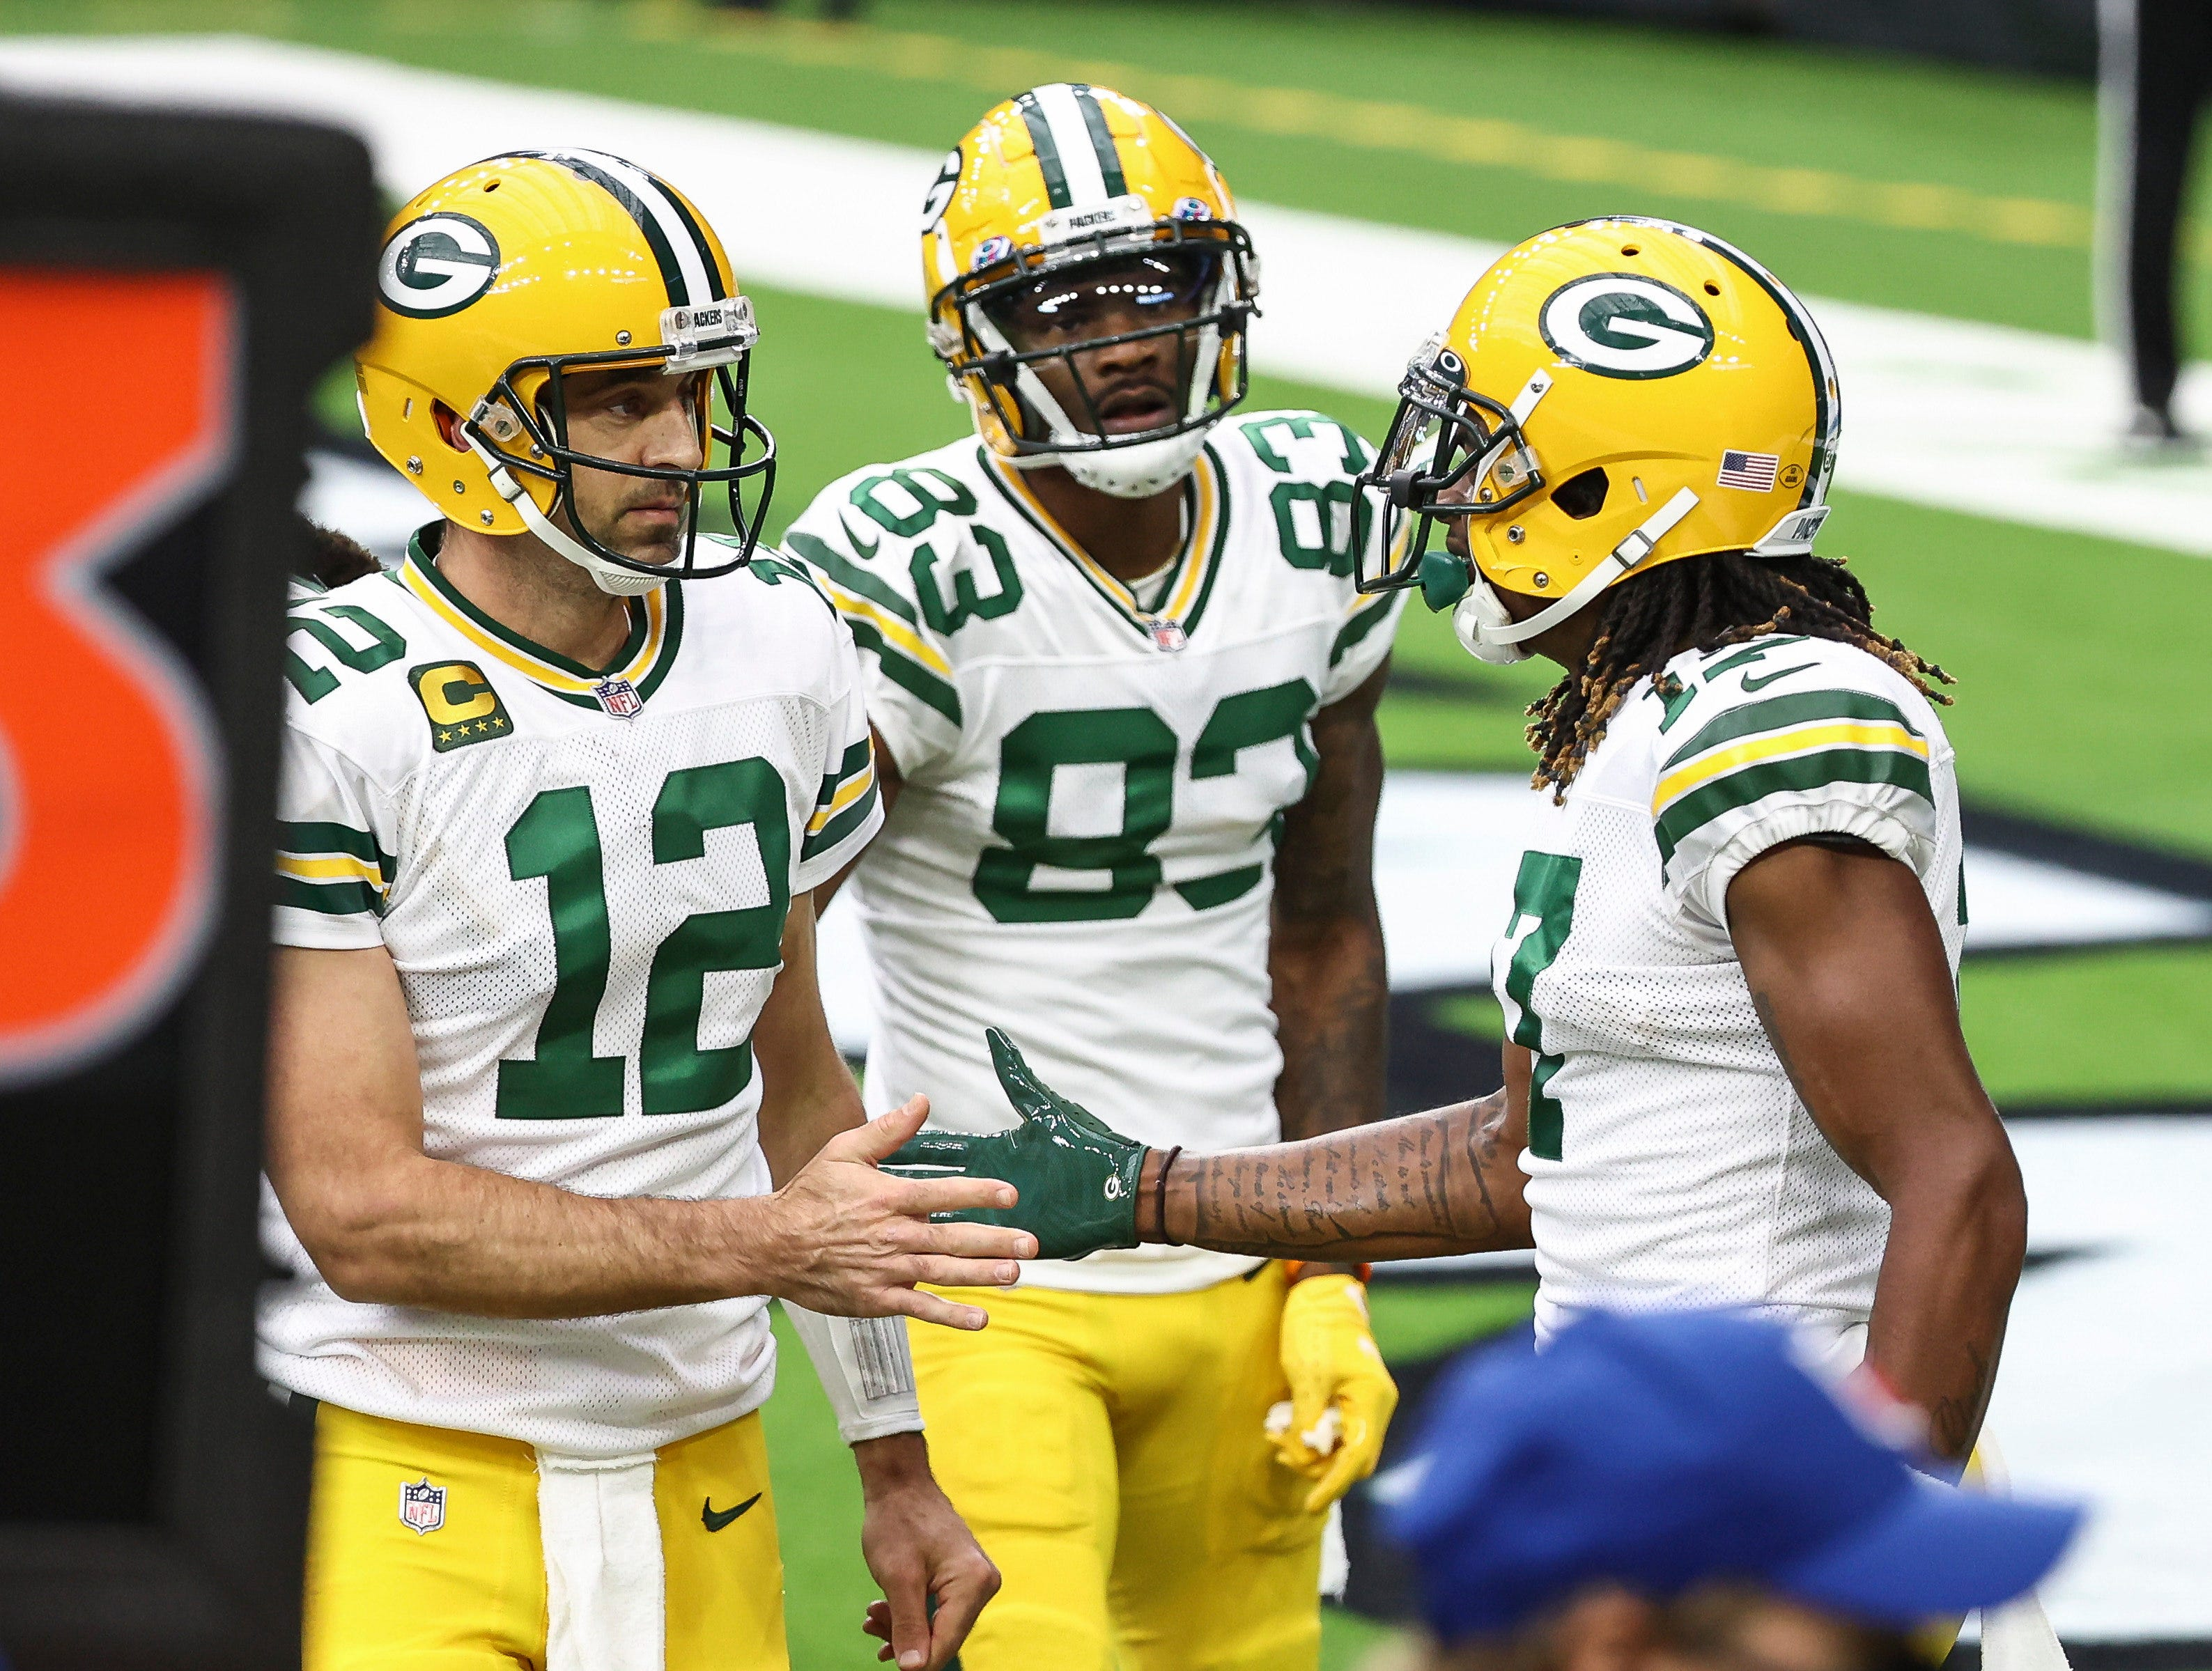 Aaron Rodgers, Davante Adams take Green Bay Packers' lack of deadline deal for receiver in stride